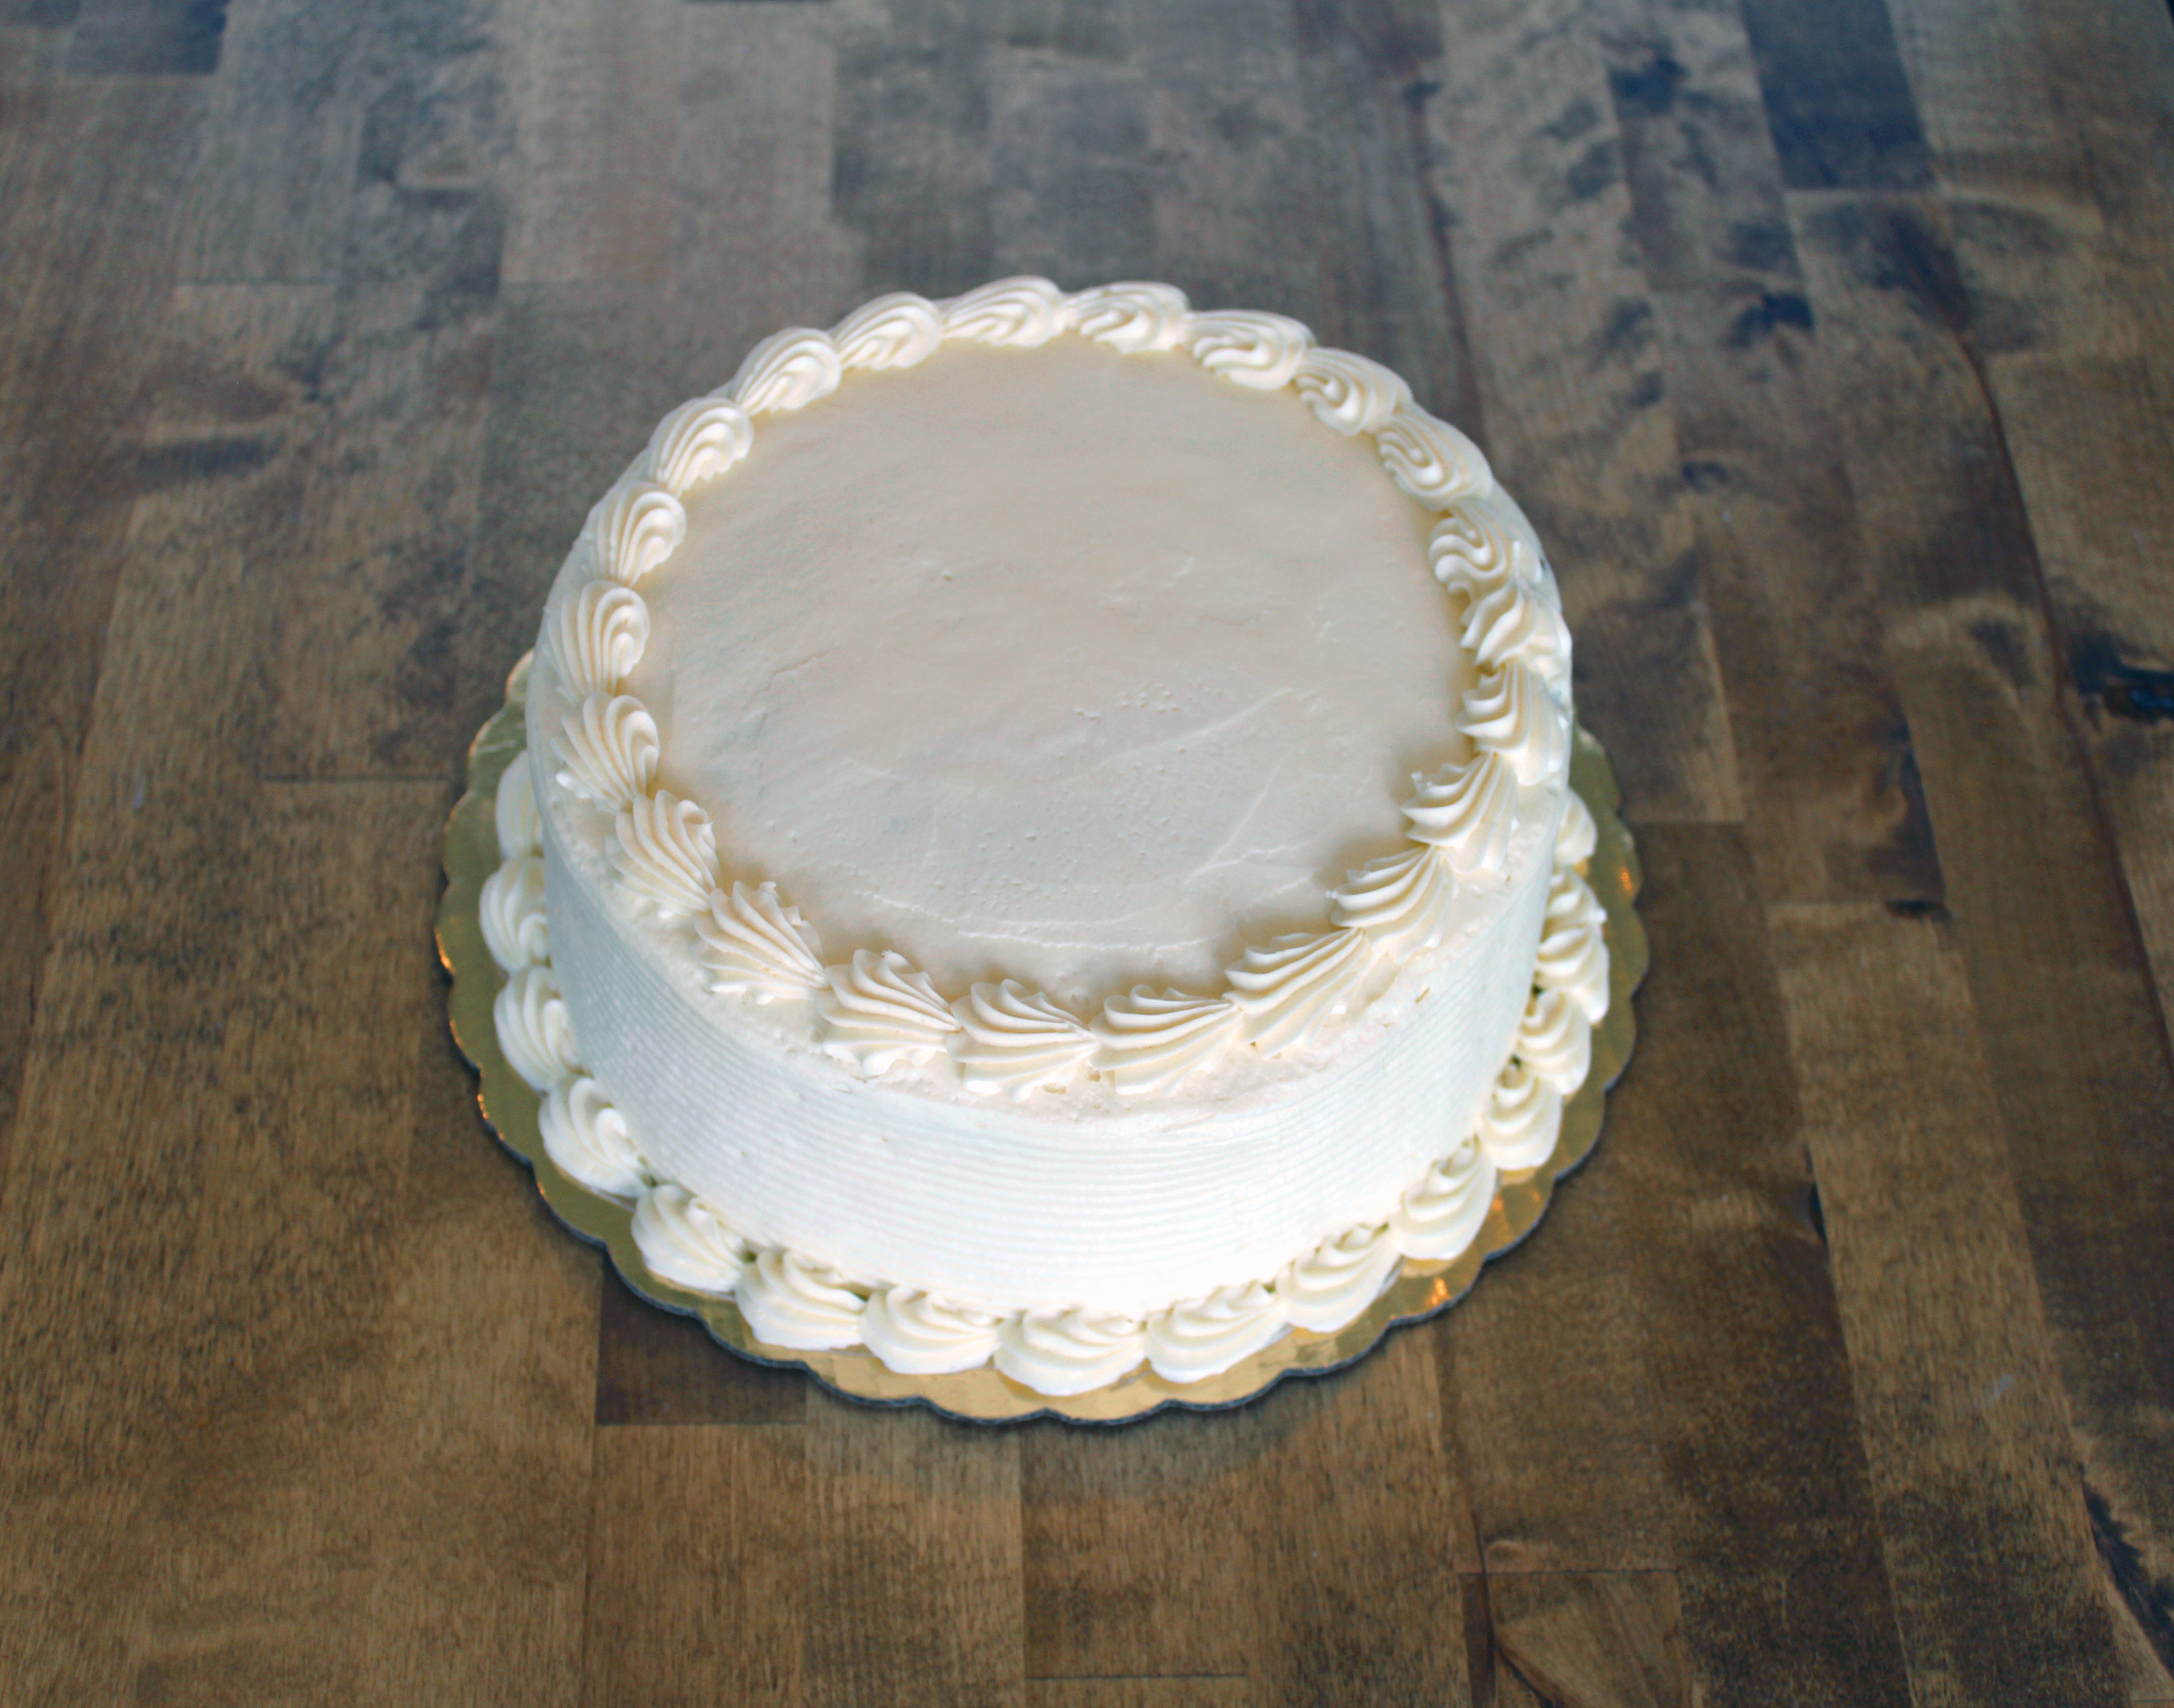 8 in round cake - $19.99    serves 8-10 people